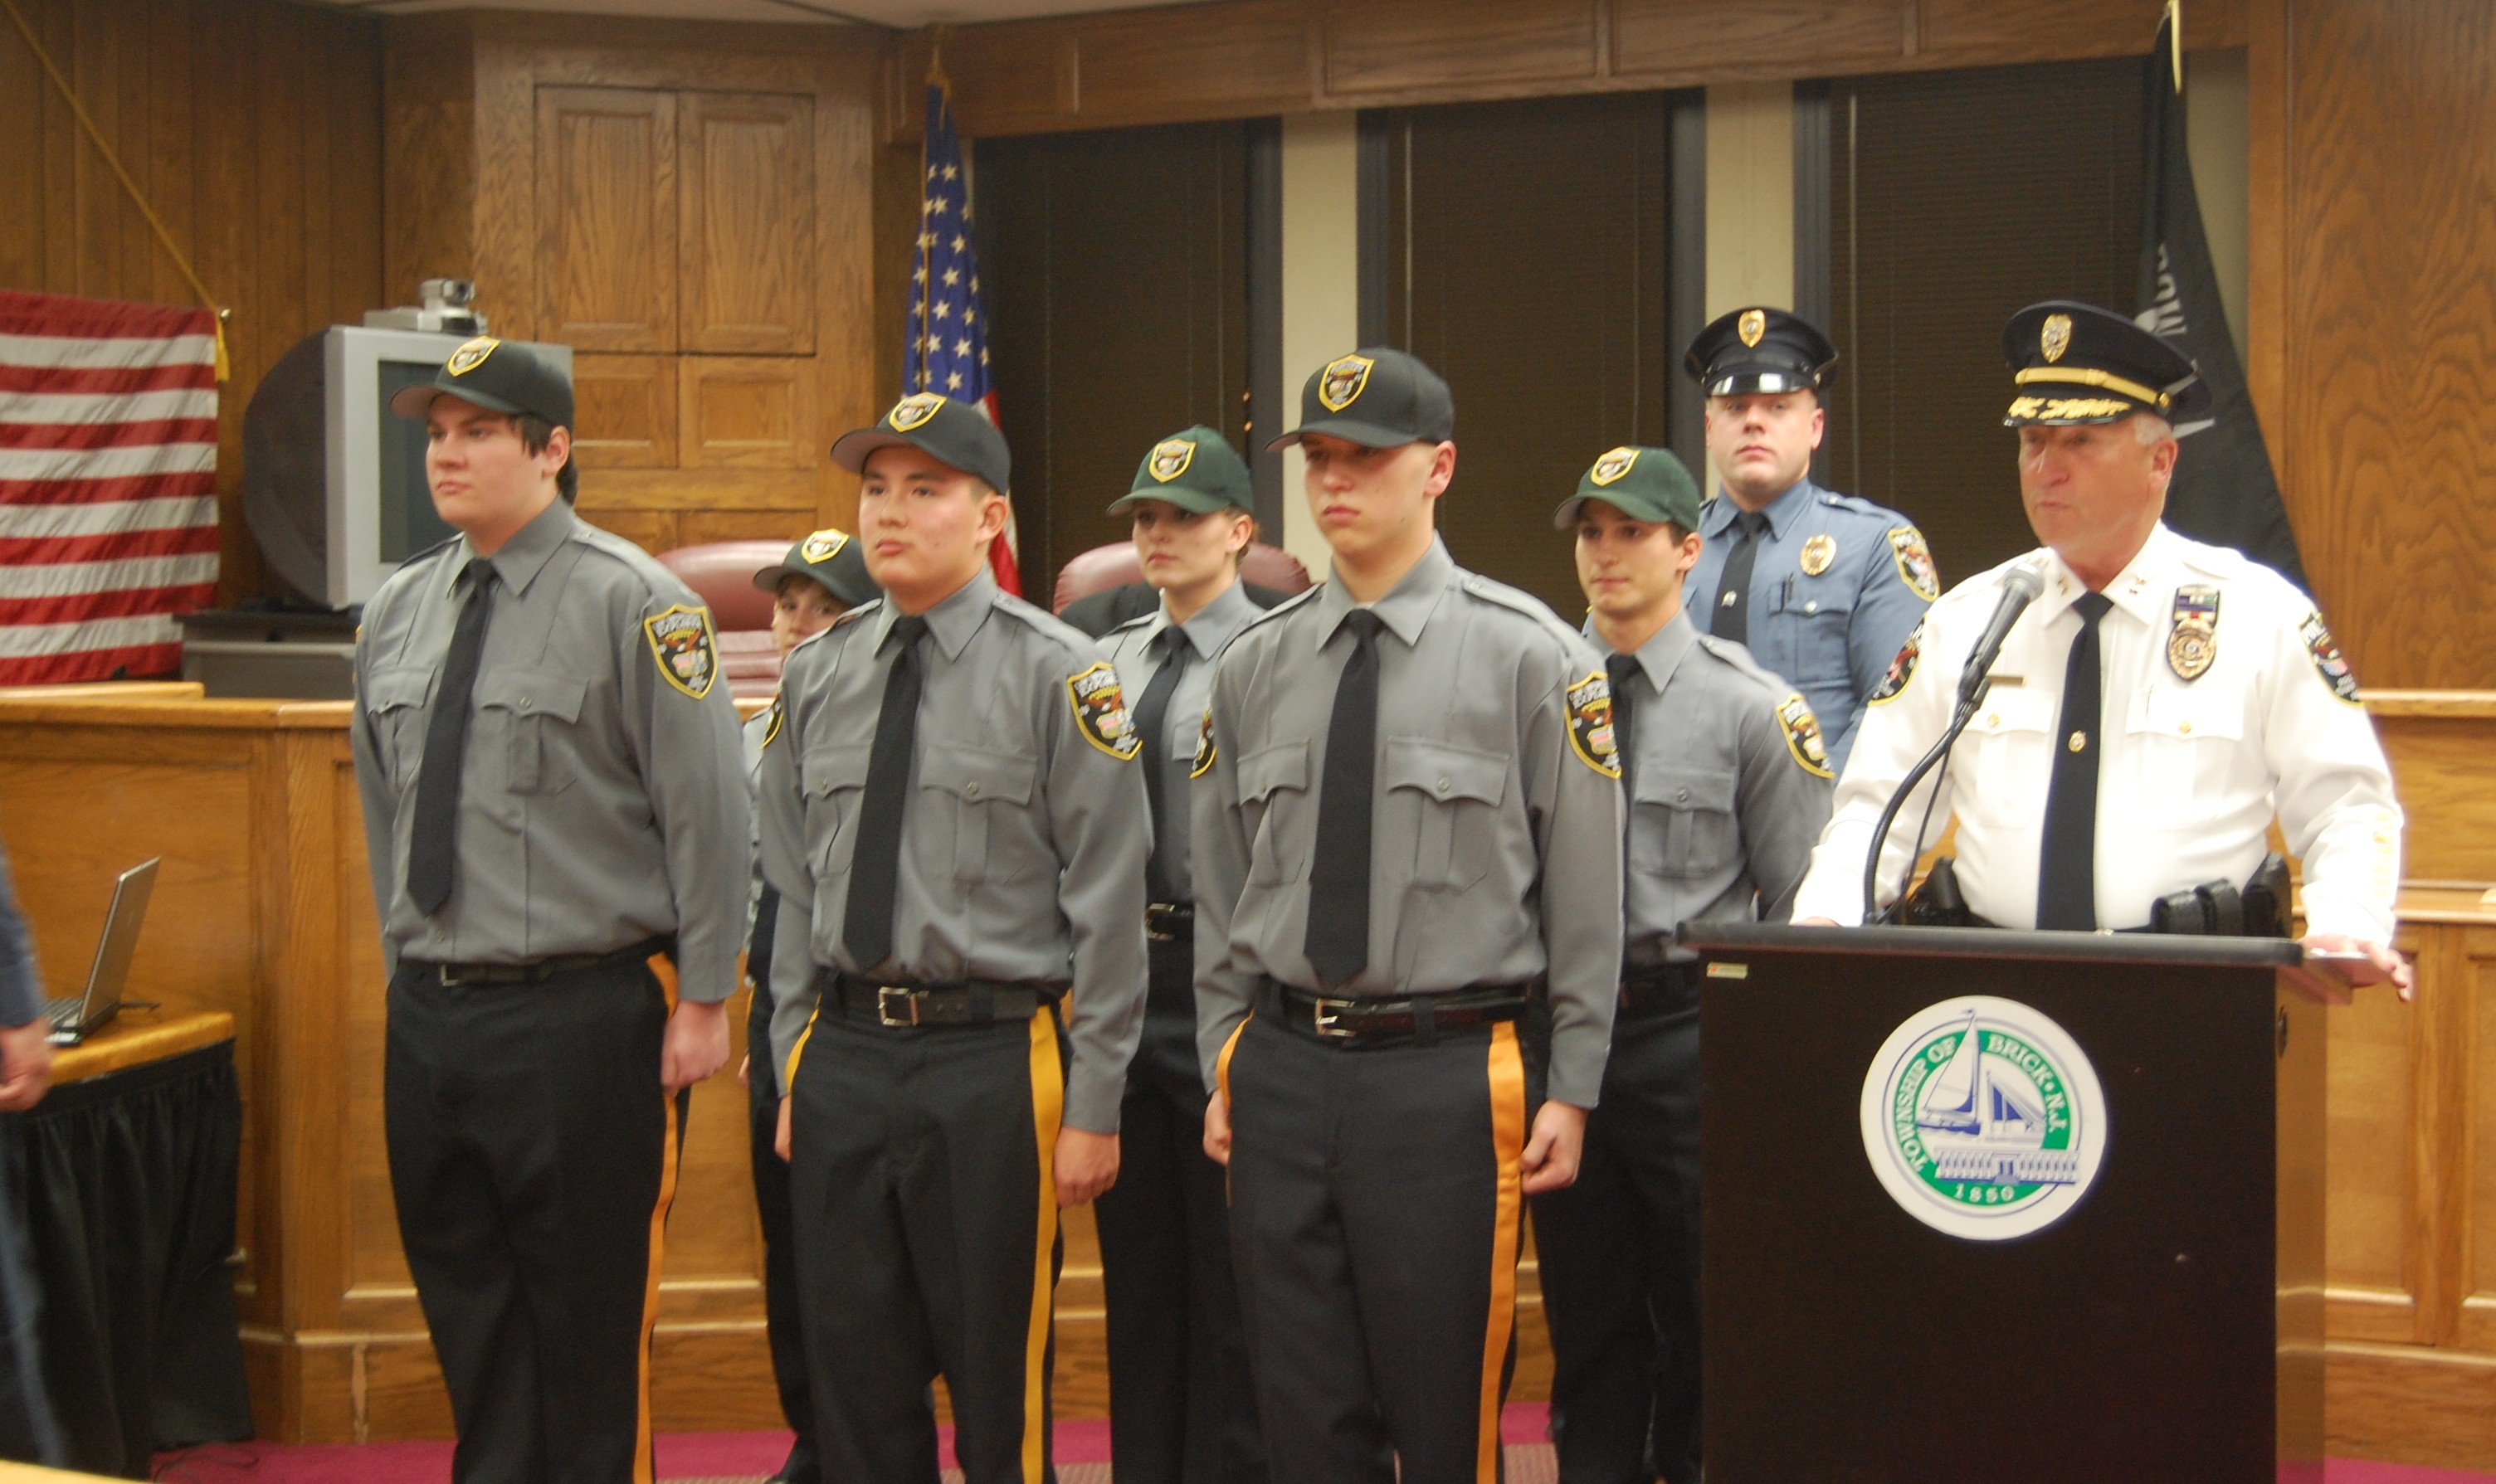 Brick newest police explorers standing with Chief Nils R. Bergquist (Photo: Daniel Nee)